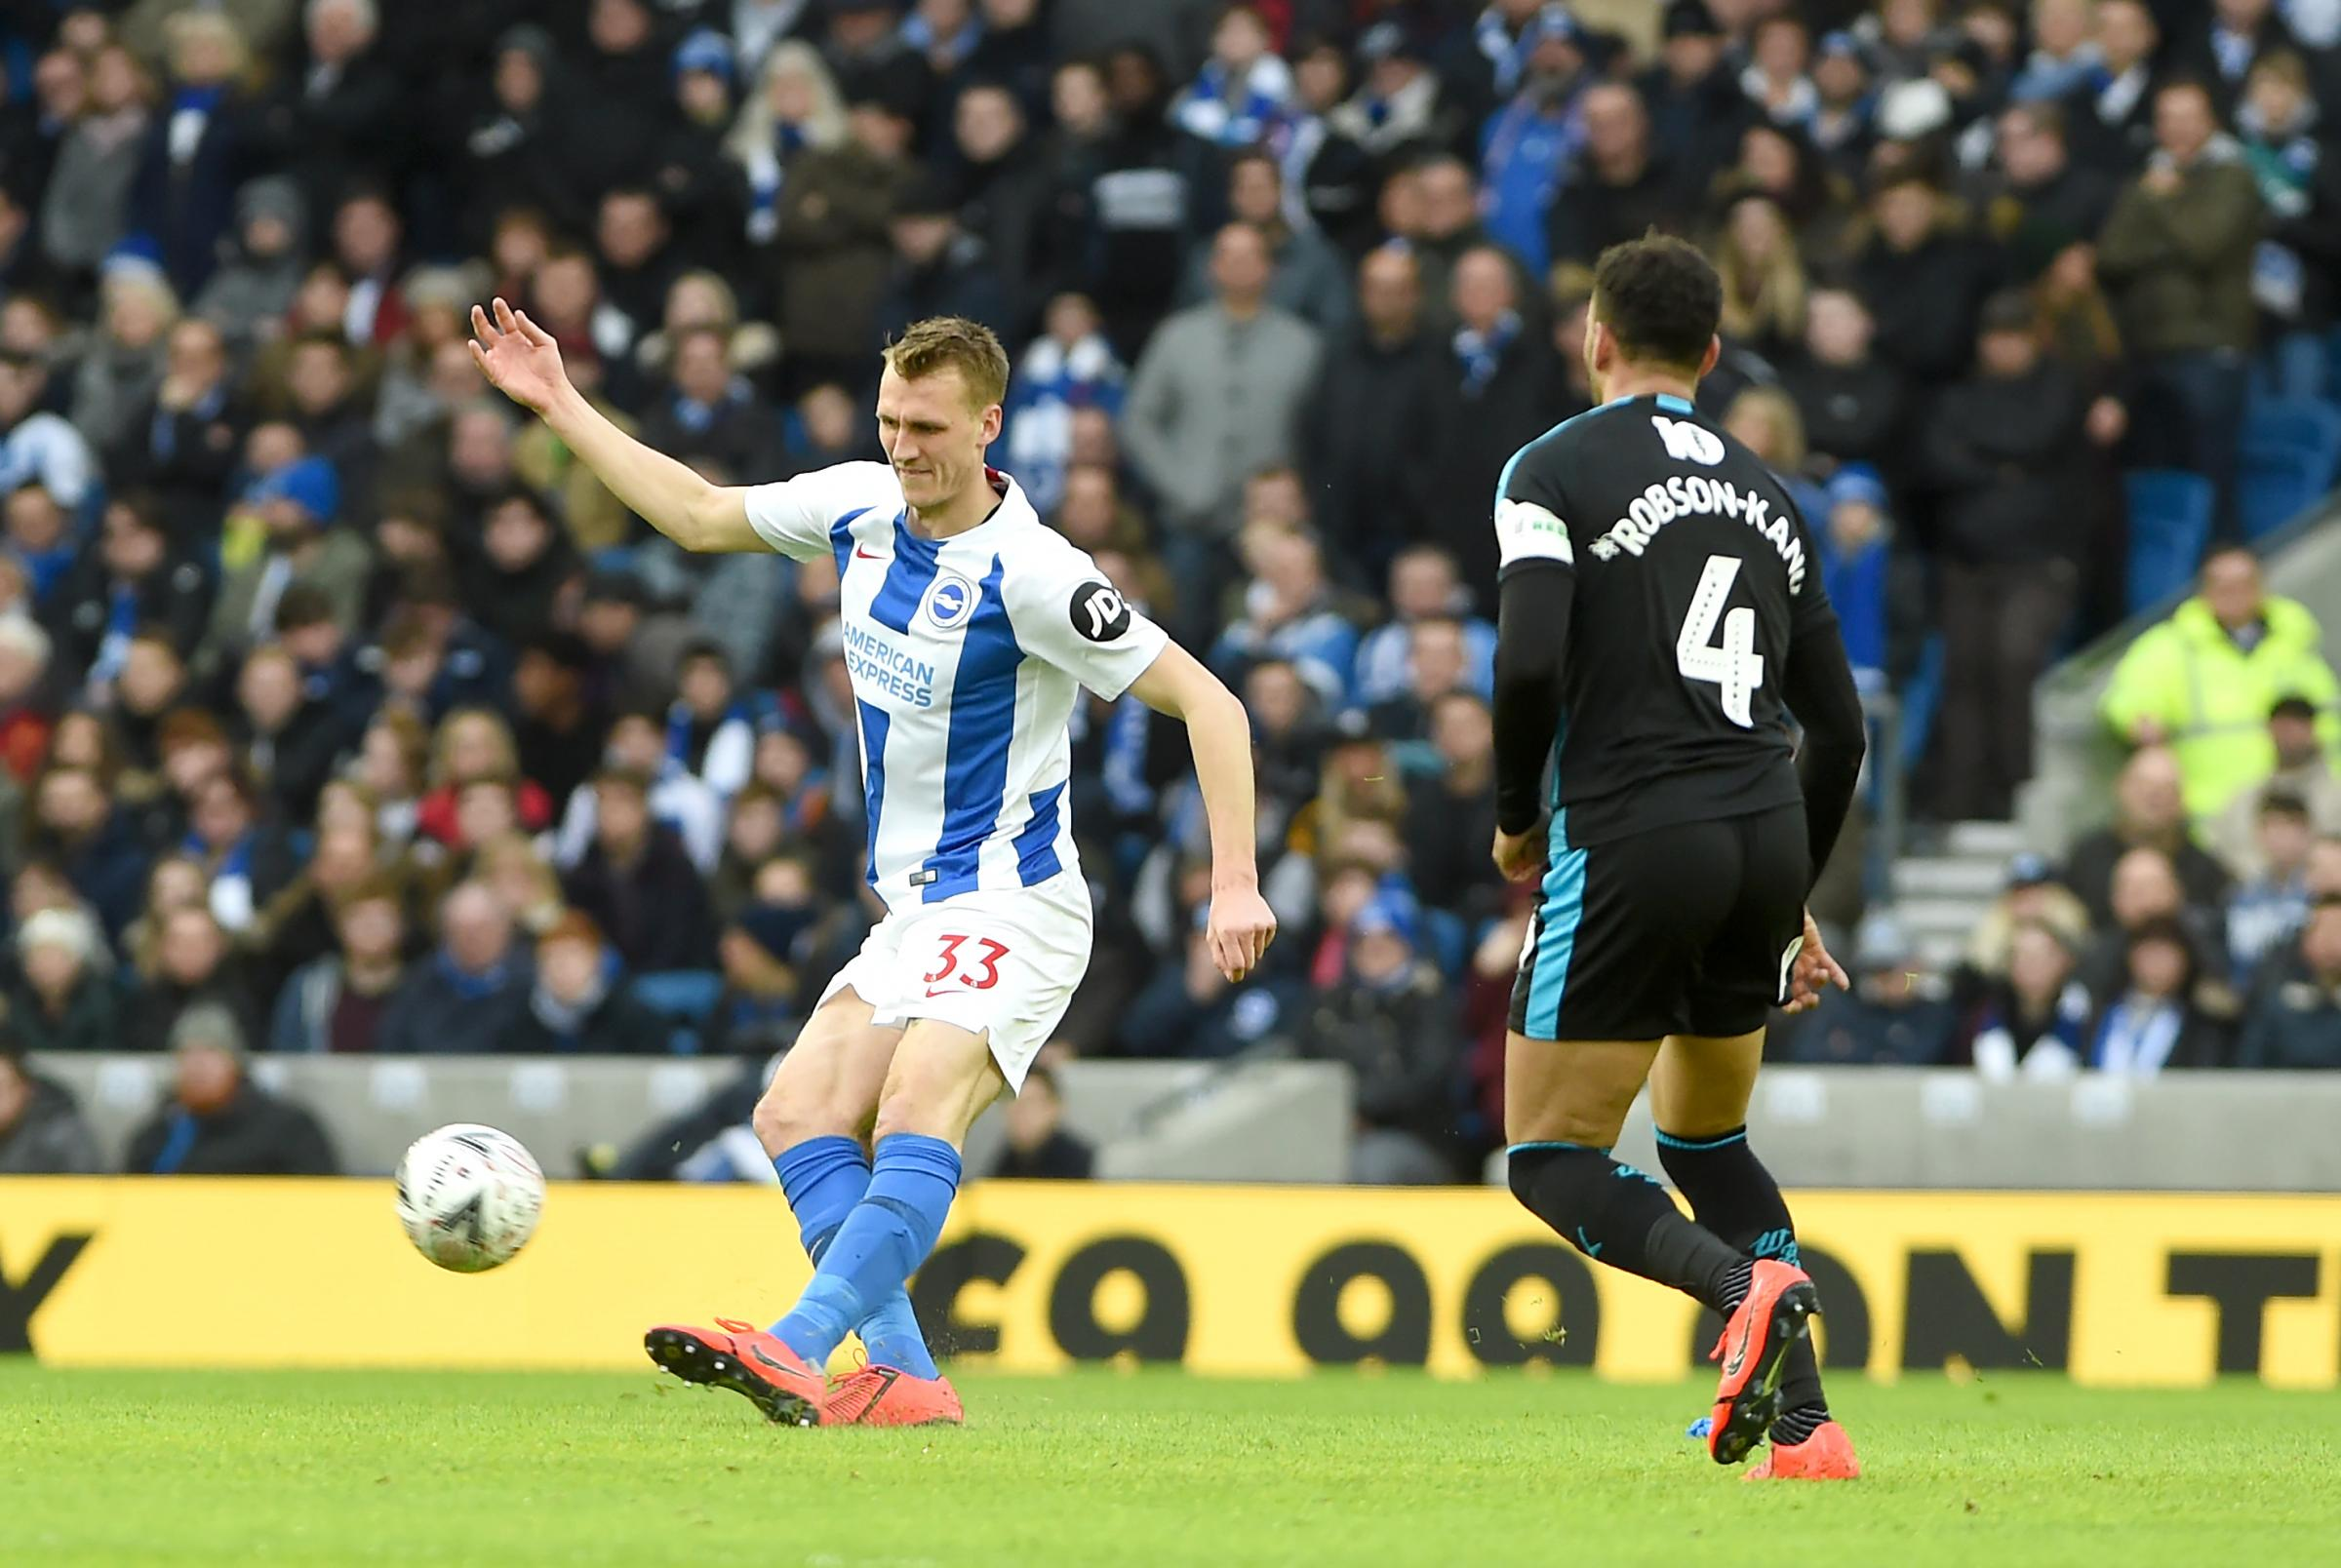 Burn urges Albion to treat Derby like they are Prem rivals